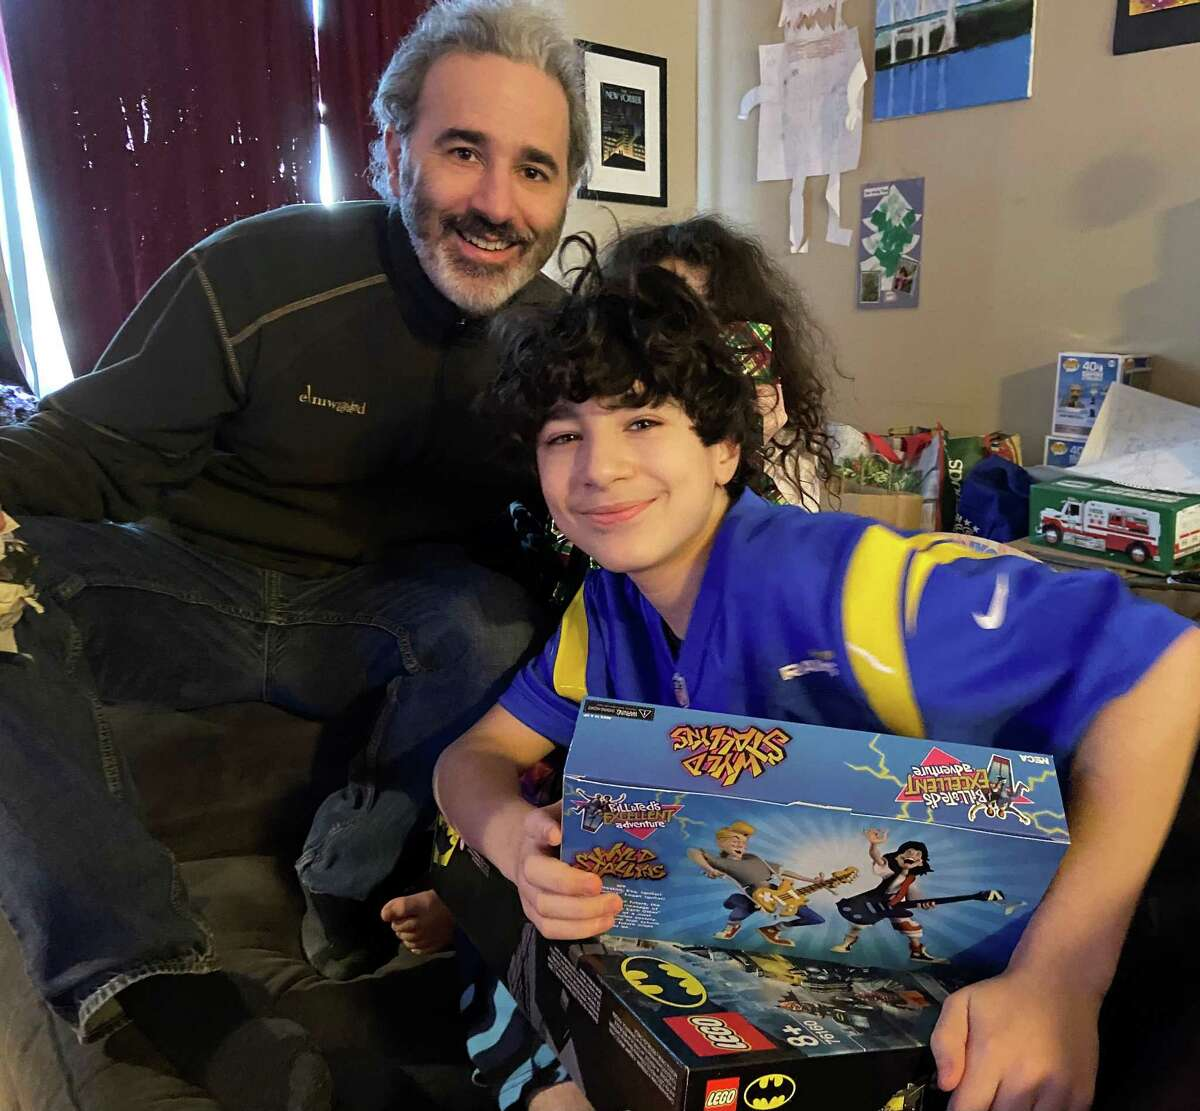 """Allie Tarantino celebrates his son, Cyrus, on his 12th birthday. His wife, Shira, calls Cyrus their """"inauguration baby,"""" since he was born on former President Barack Obama's first inauguration as president. Daughter Juniper Tarantino, 9, hides behind the two as they comemorate President Joe Biden's induction to the presidency."""